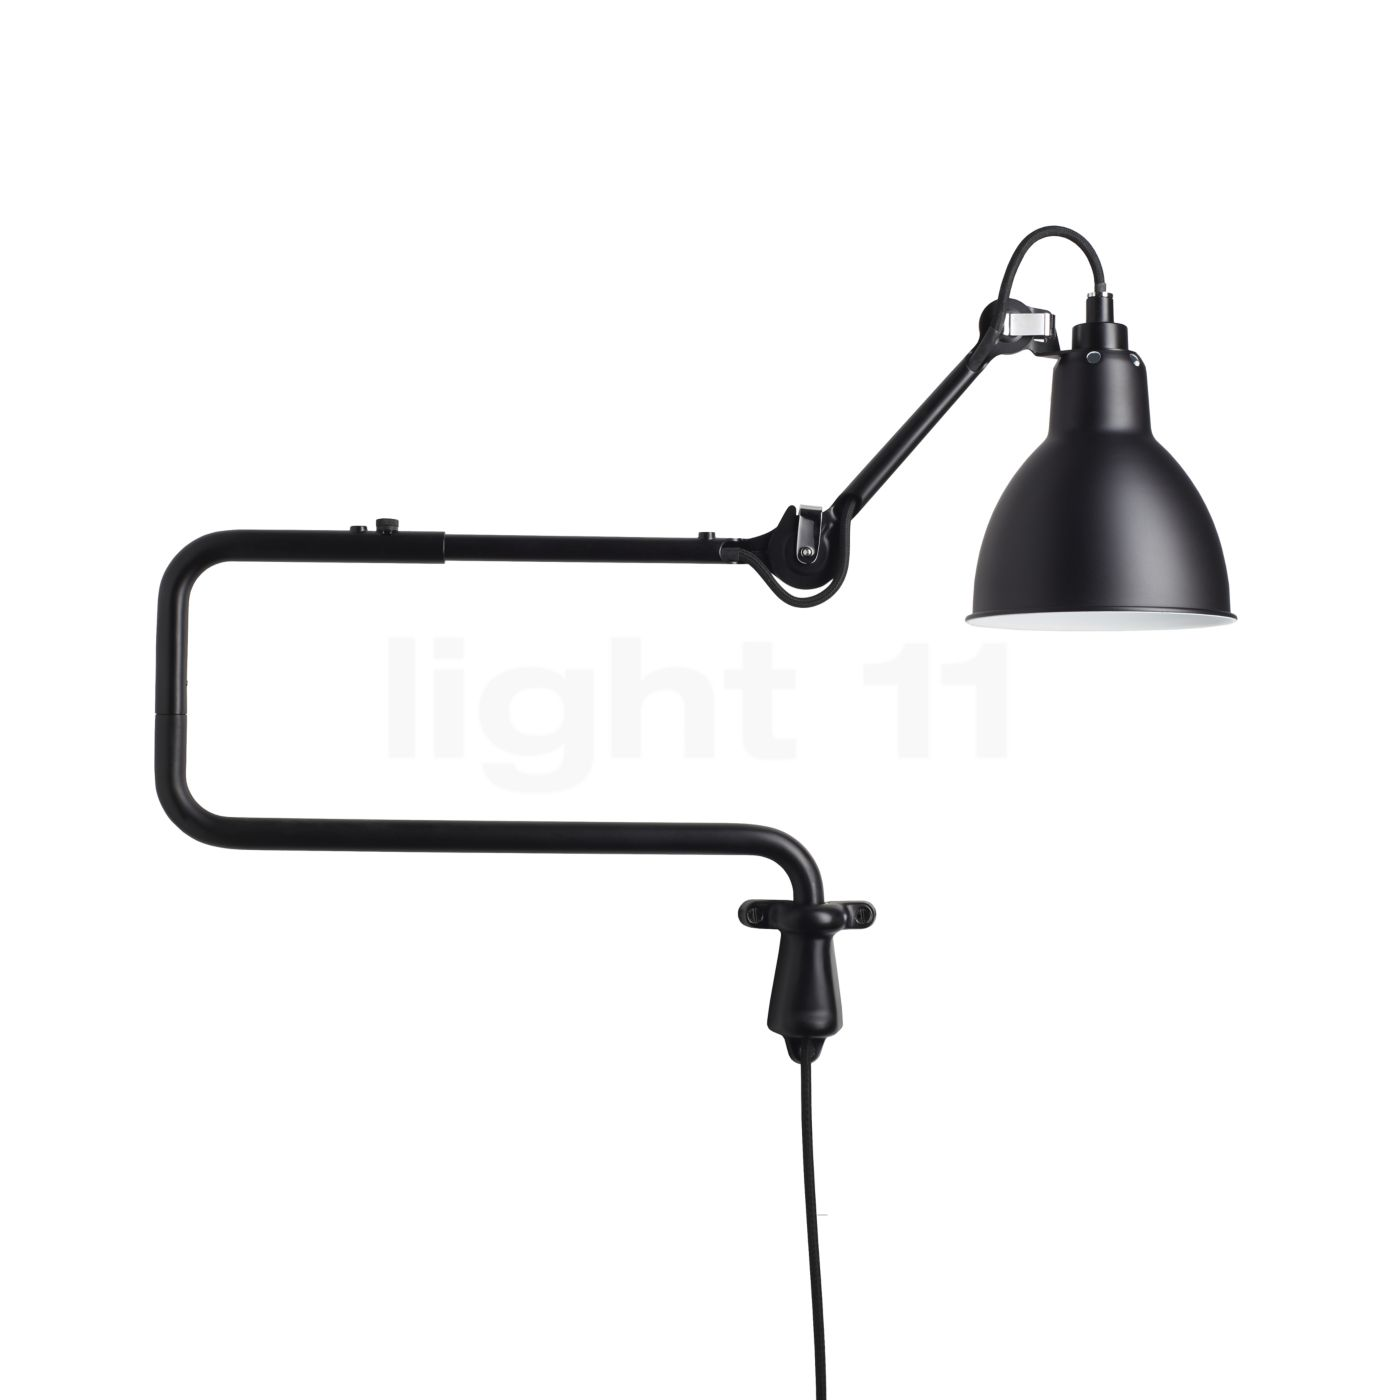 dcw lampe gras no 303 wandleuchte wandleuchten mit stecker. Black Bedroom Furniture Sets. Home Design Ideas